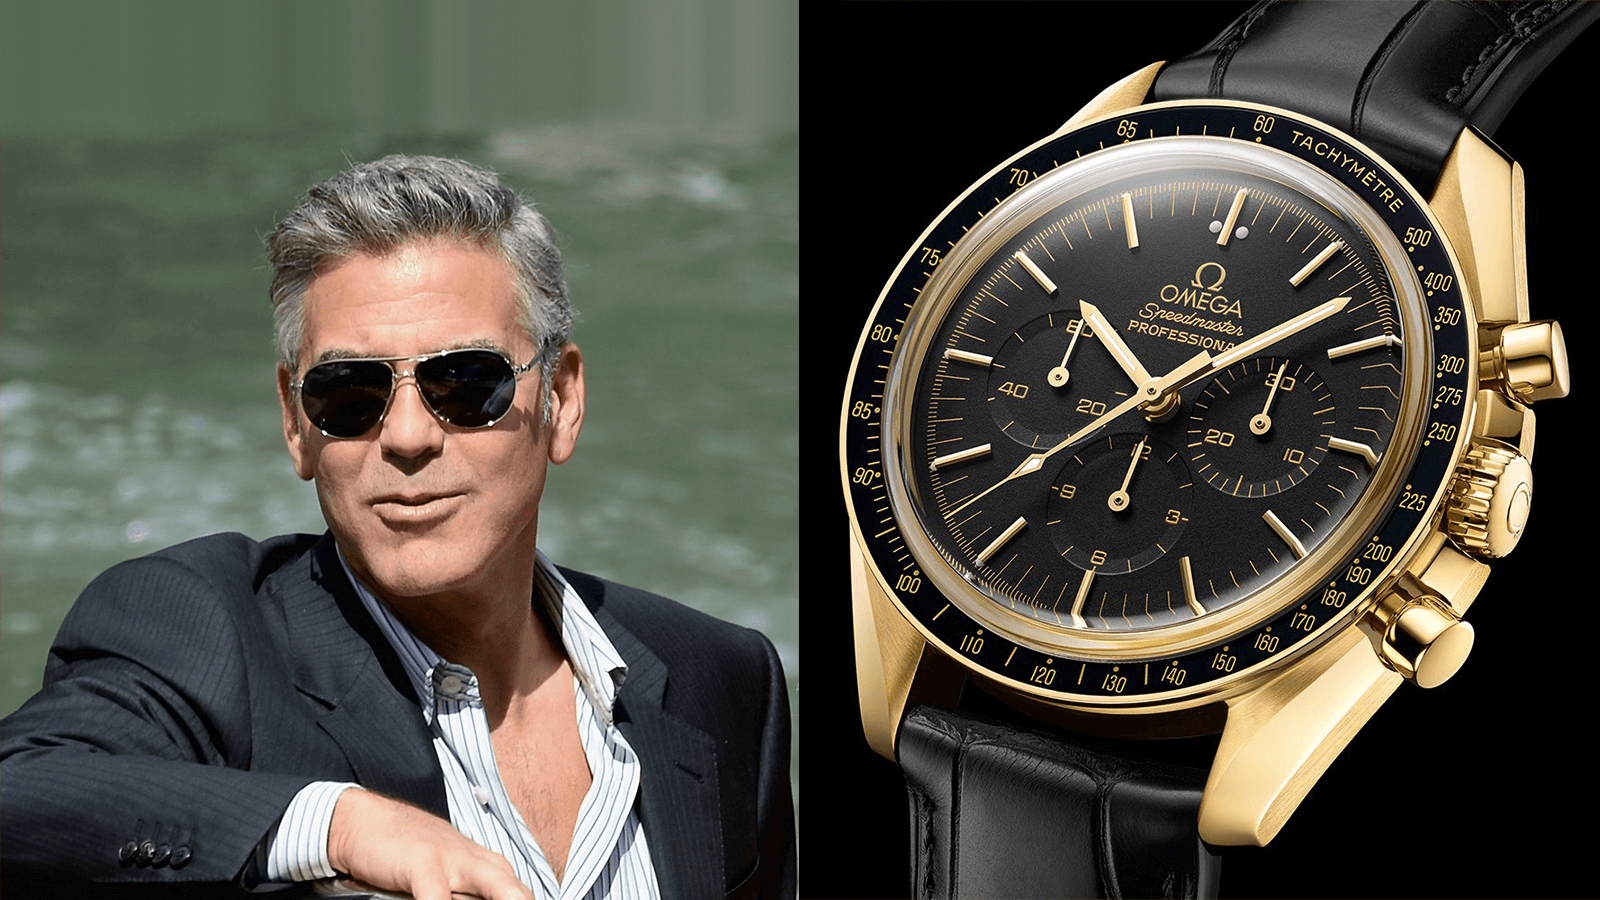 Collection Review: REVIEWING George Clooney's OMEGA Heavy Watch Collection